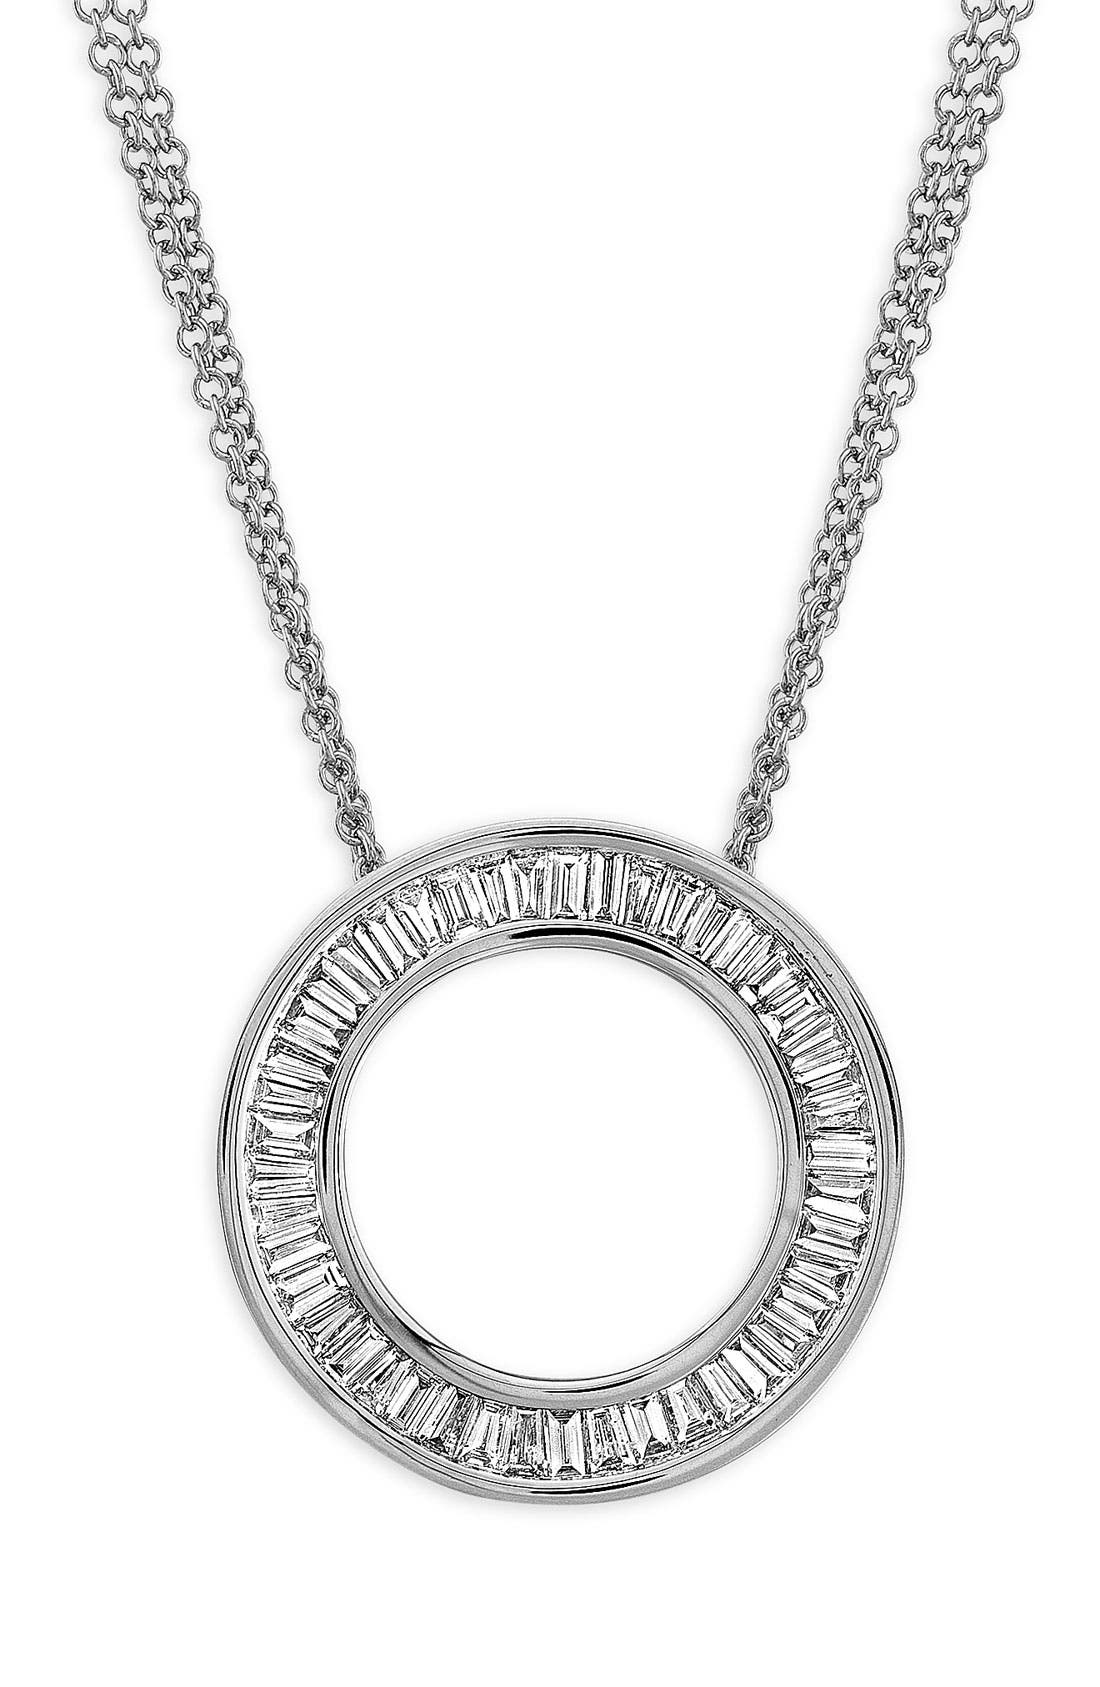 'Circle of Life' Medium Diamond Pendant Necklace,                             Main thumbnail 1, color,                             WHITE GOLD